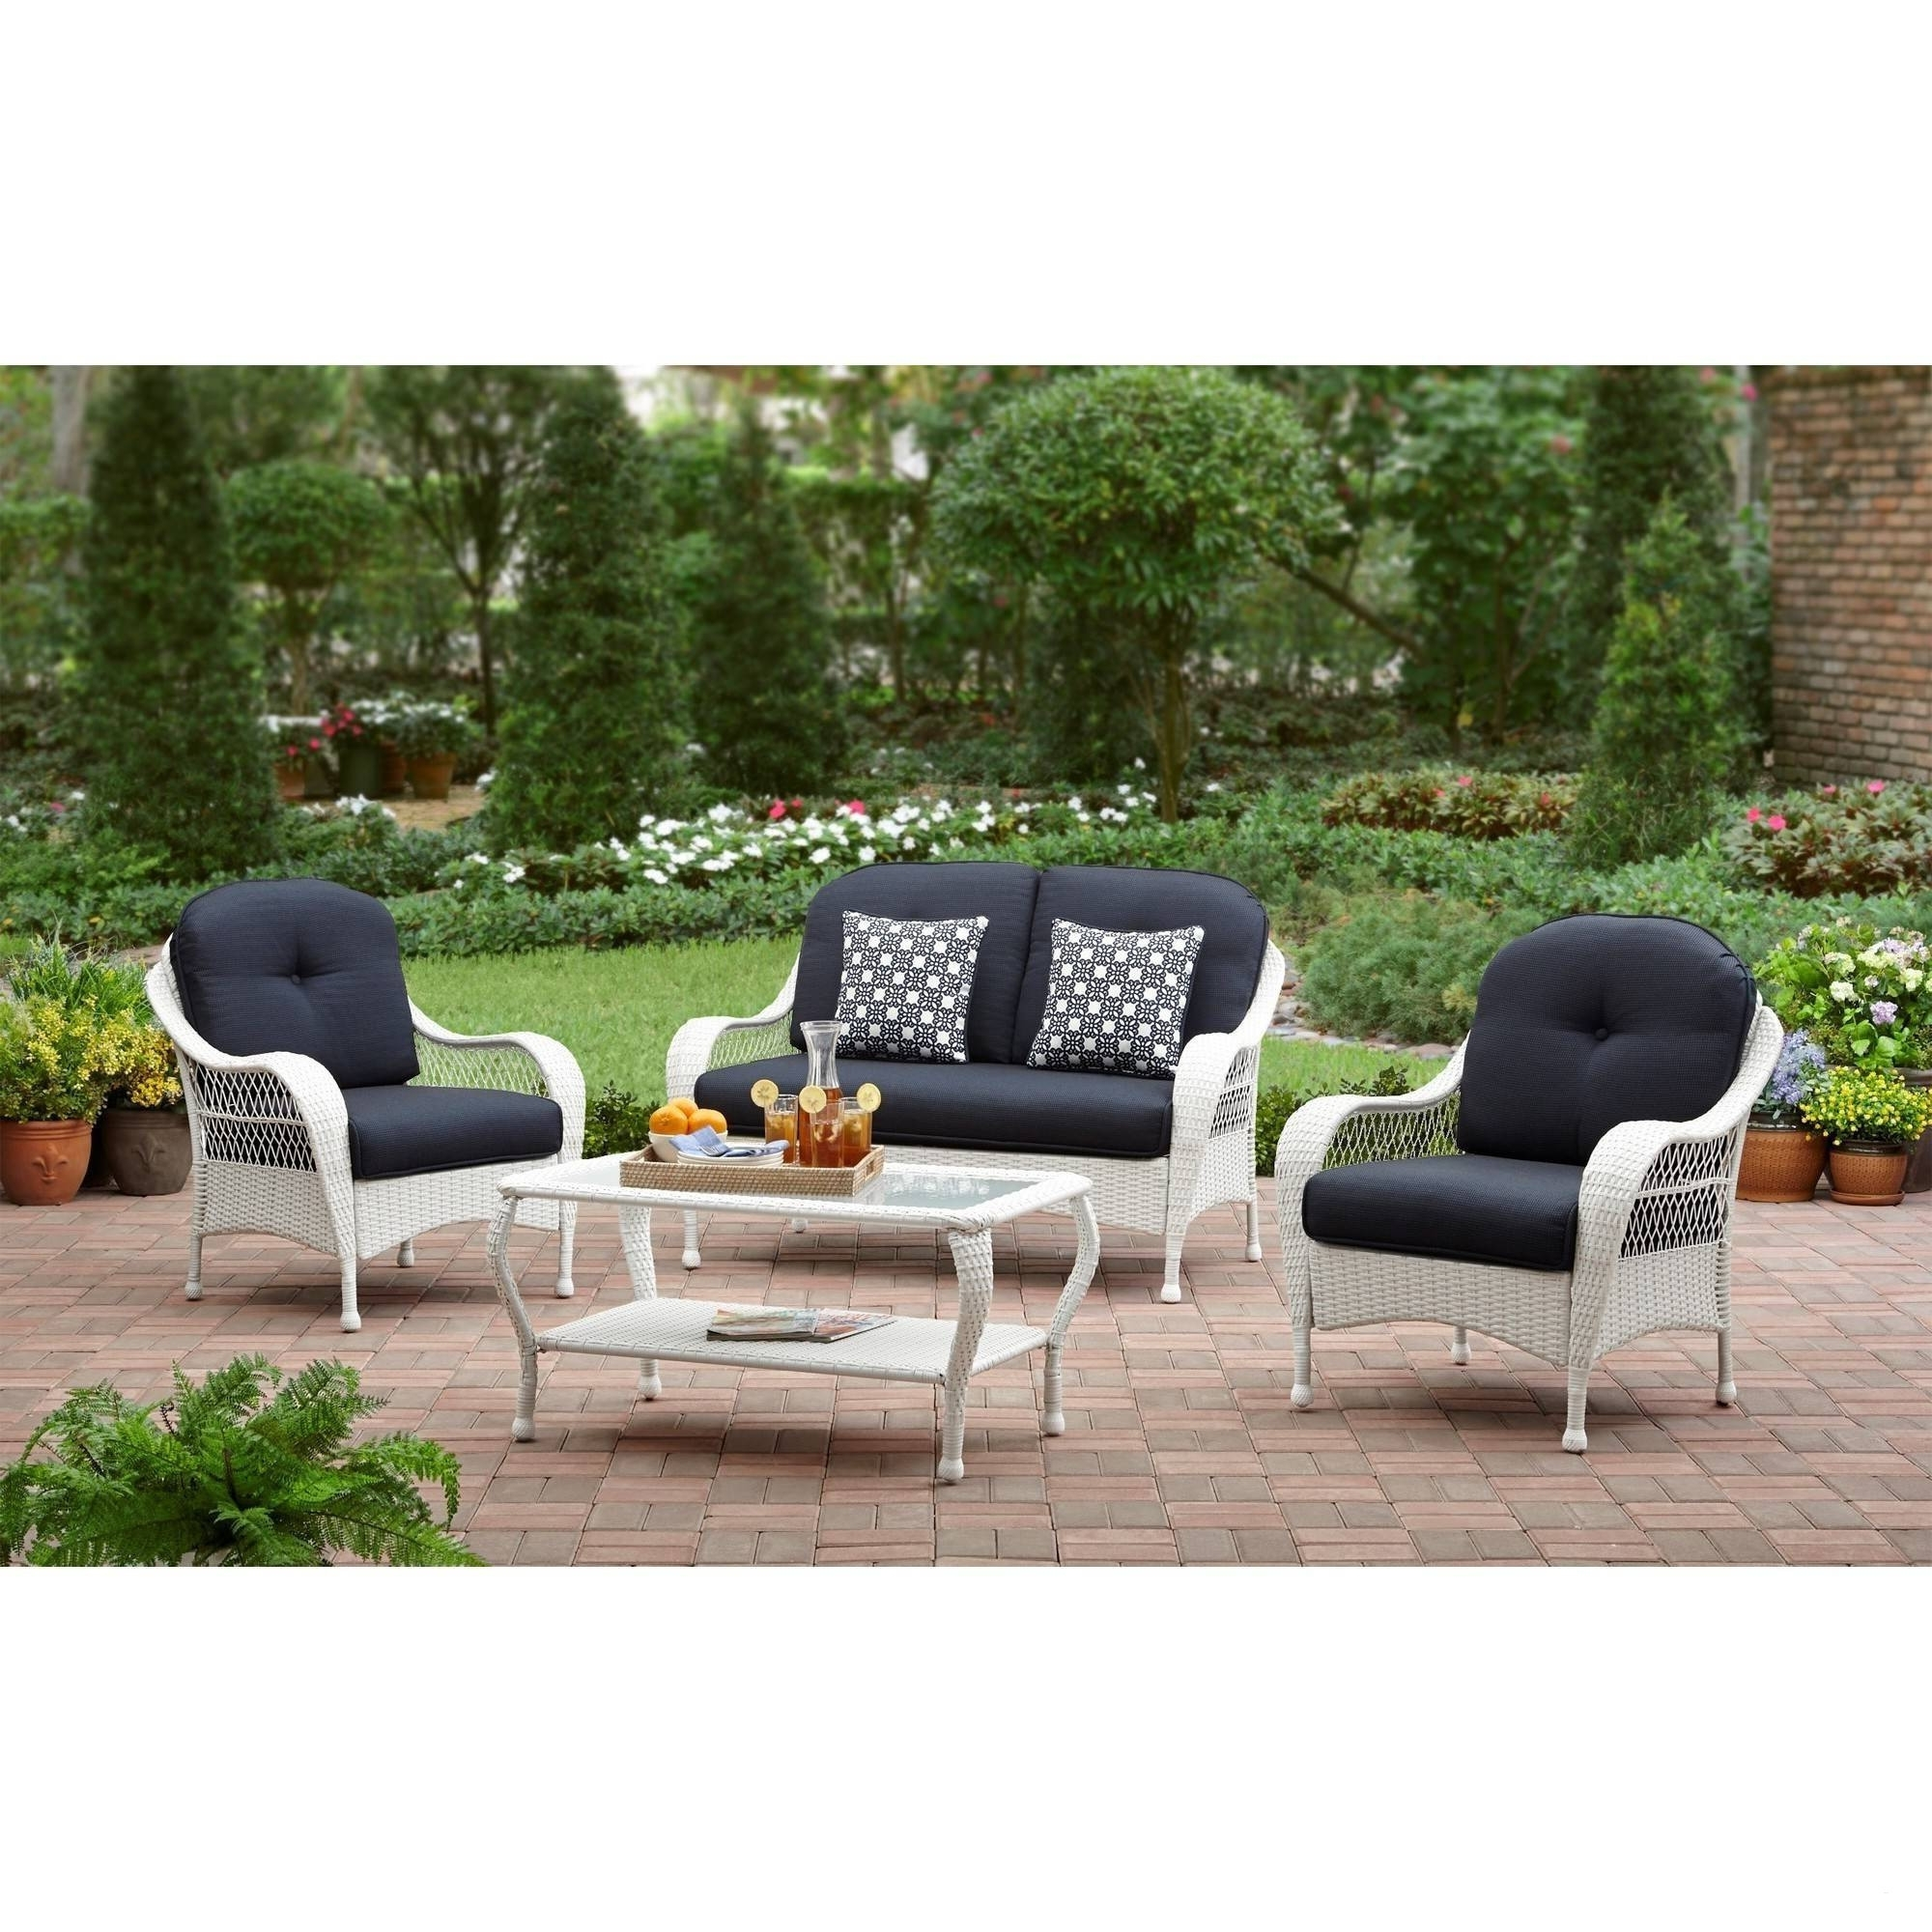 Popular Delightful Conversation Sets Patio Furniture Clearance 18 Attractive Pertaining To Target Patio Furniture Conversation Sets (View 17 of 20)